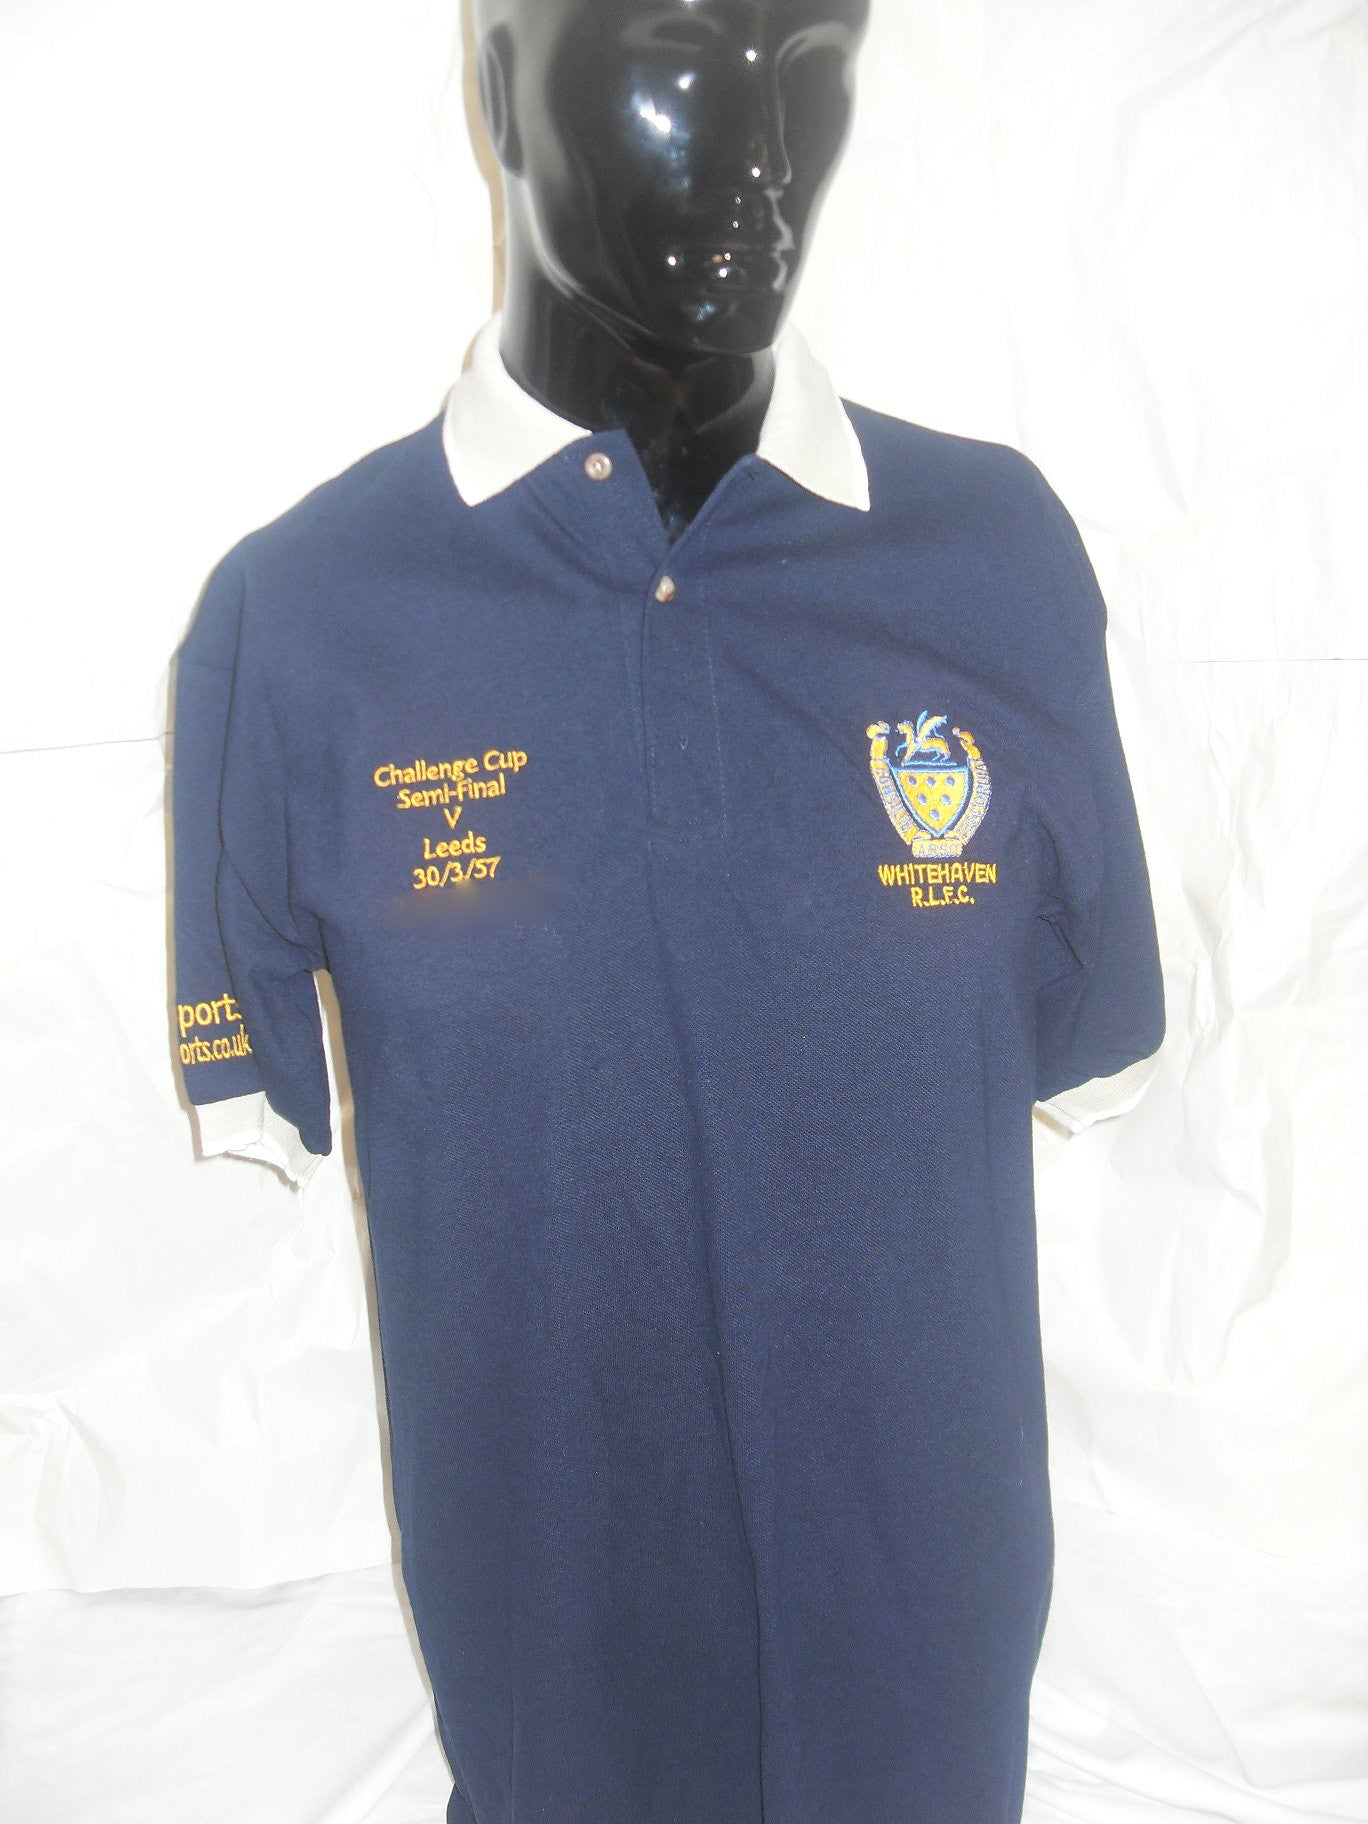 Whitehaven Rugby League Supporters  Trust Challenge Cup 60th Anniversary Polo shirt